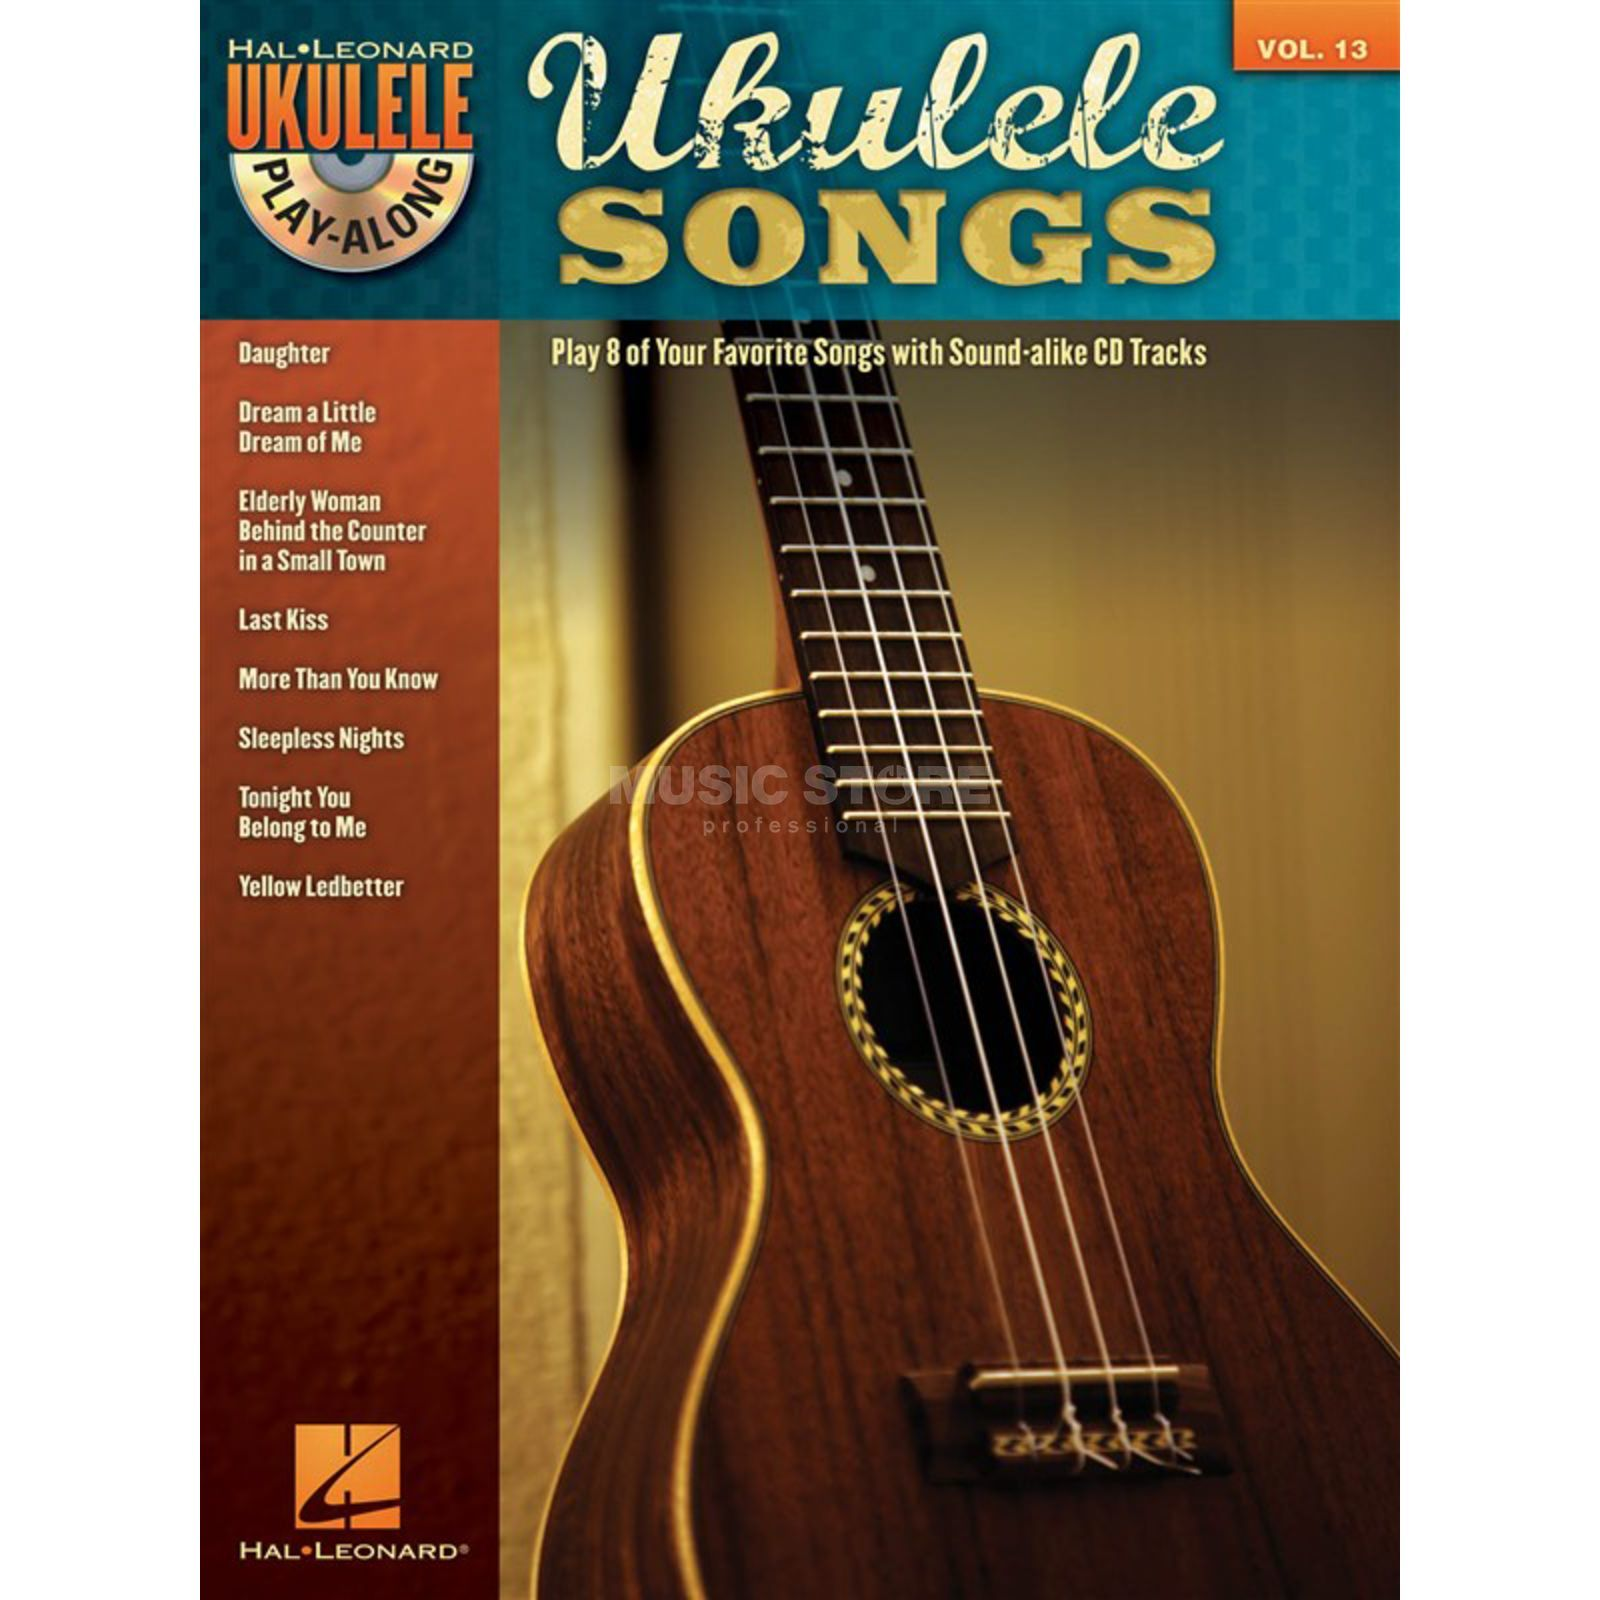 Hal Leonard Ukulele Play-Along: Songs Vol. 13, Ukulele incl. CD Produktbillede